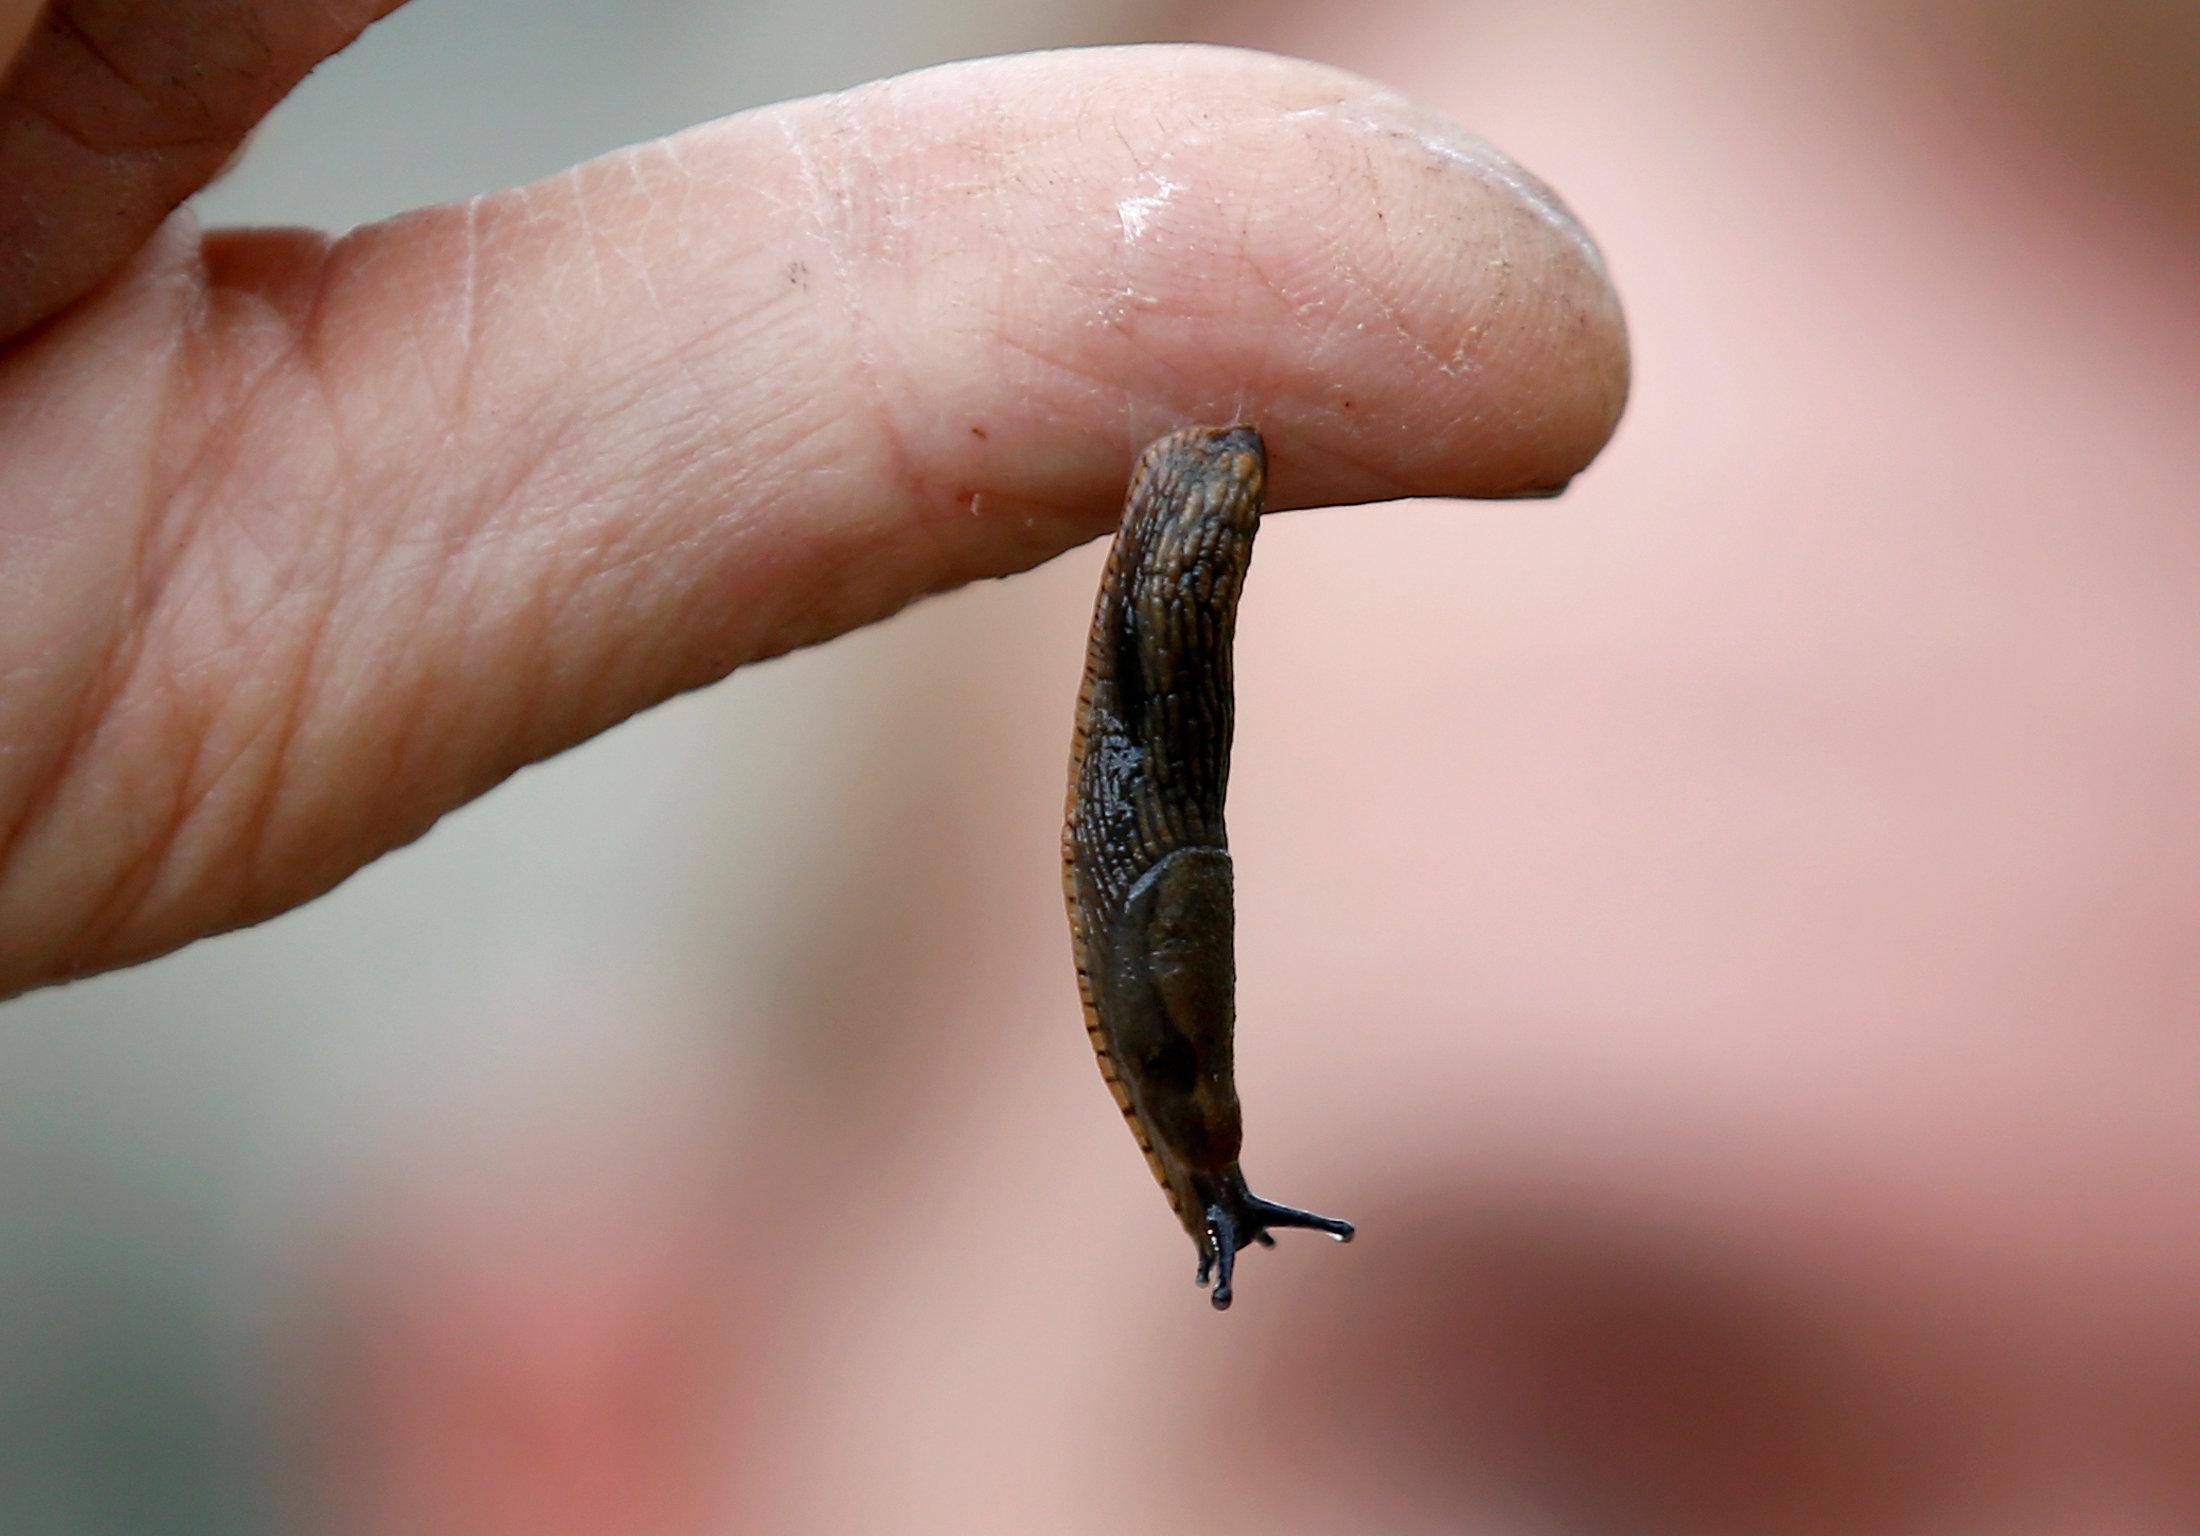 Slug slime inspires new kind of surgical glue - Reuters